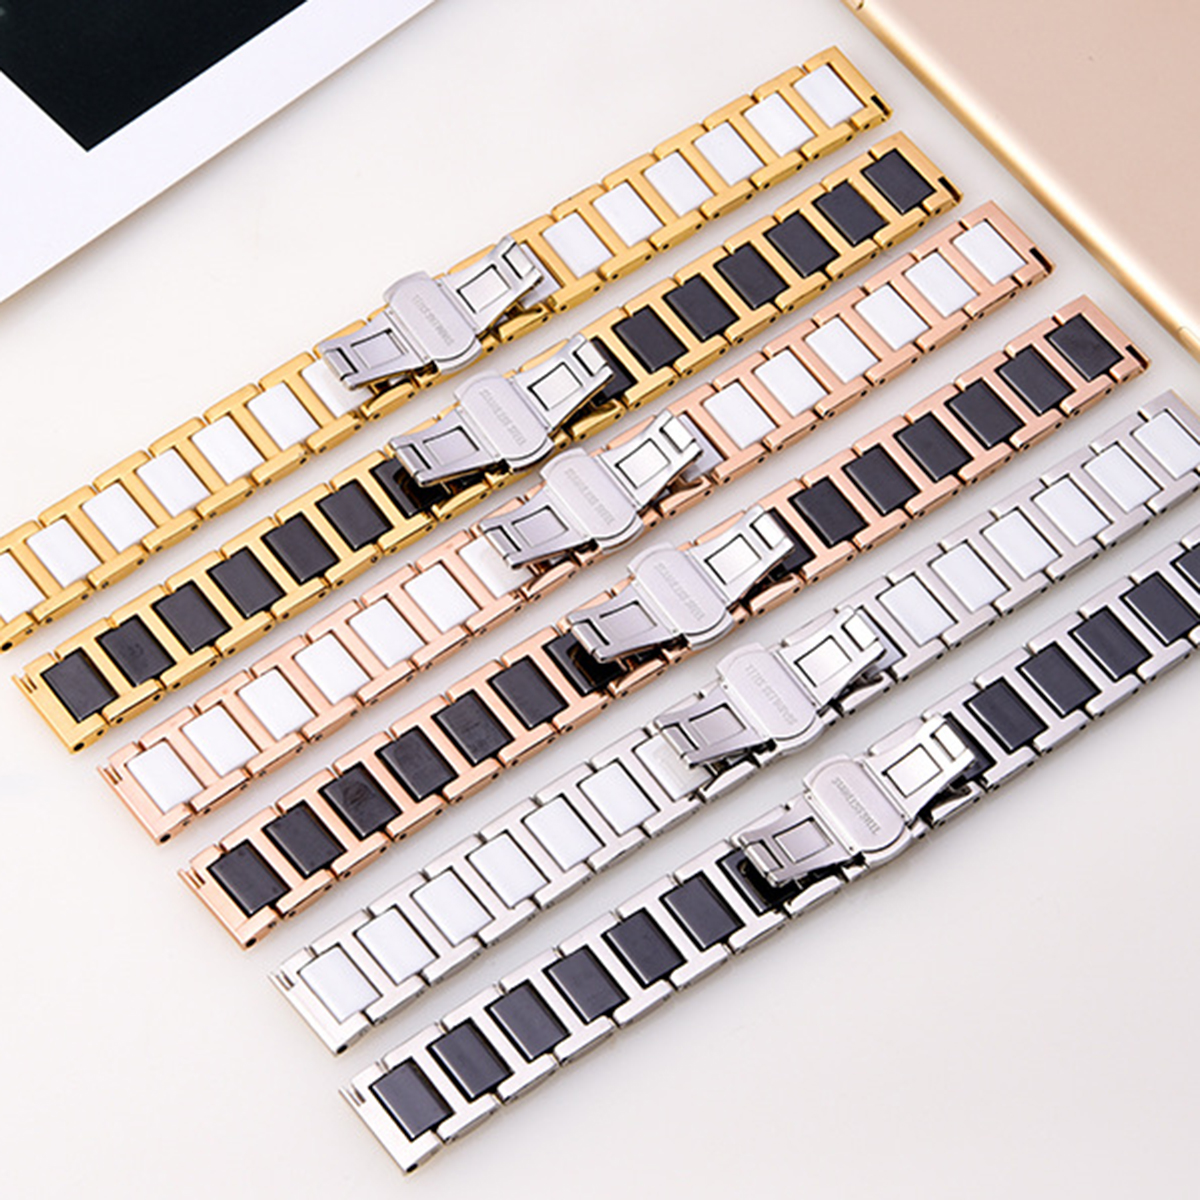 2019 Universal Ceramic Steel Watch Band Replacement Strap Bracelet With Metal Buckle Clasp 20mm For Wrist Girth 5.5-8.1inch